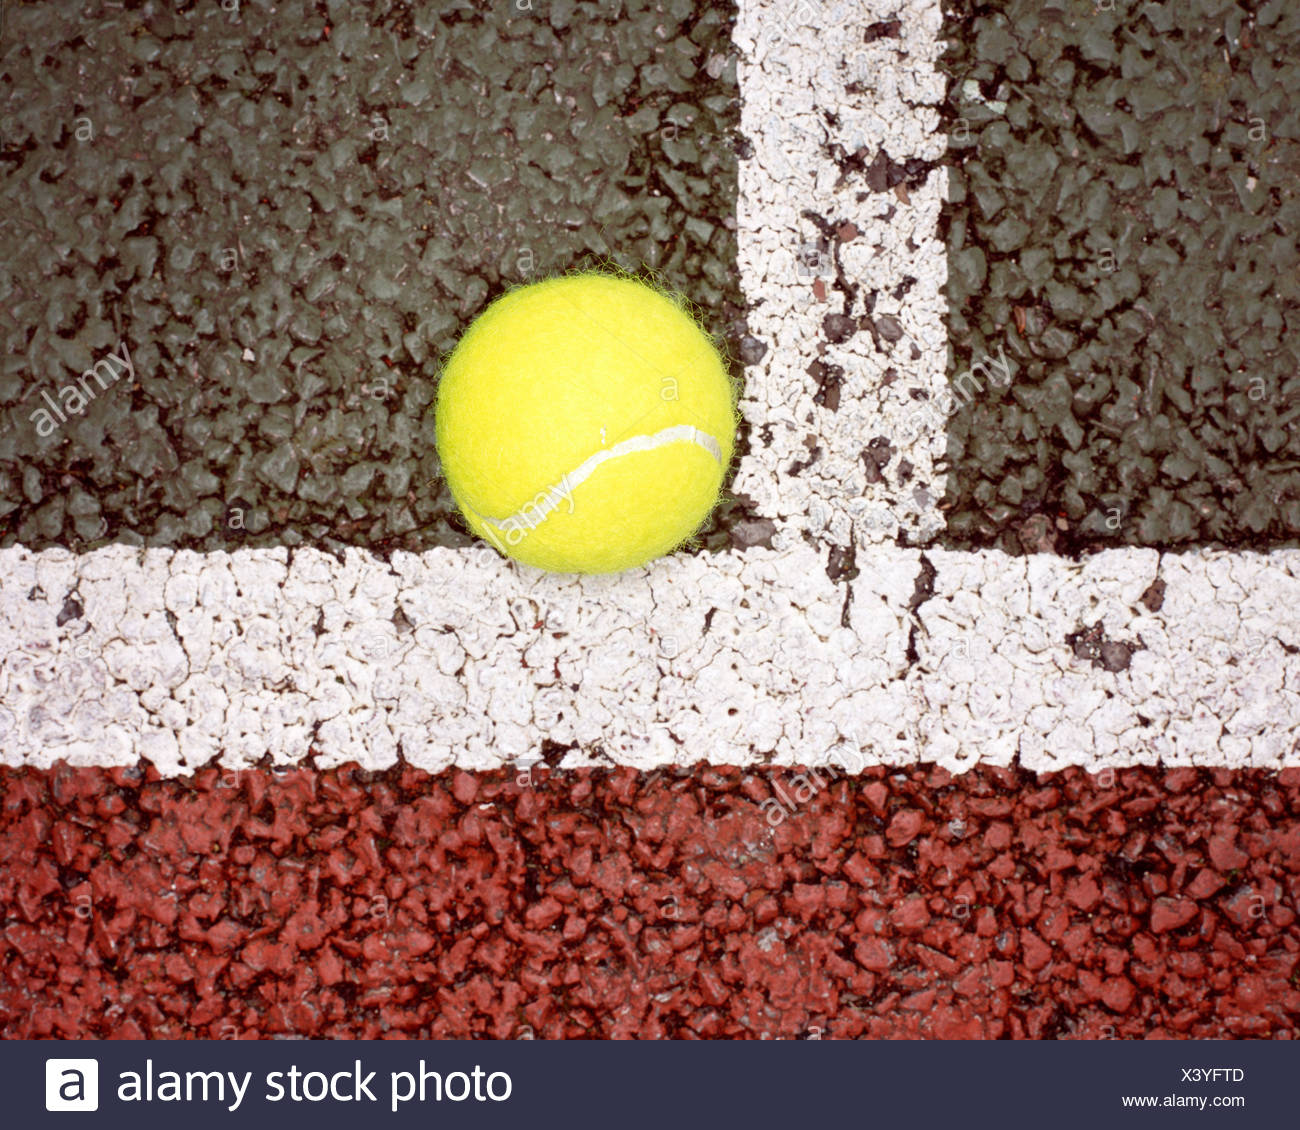 Balle de tennis en ligne Photo Stock